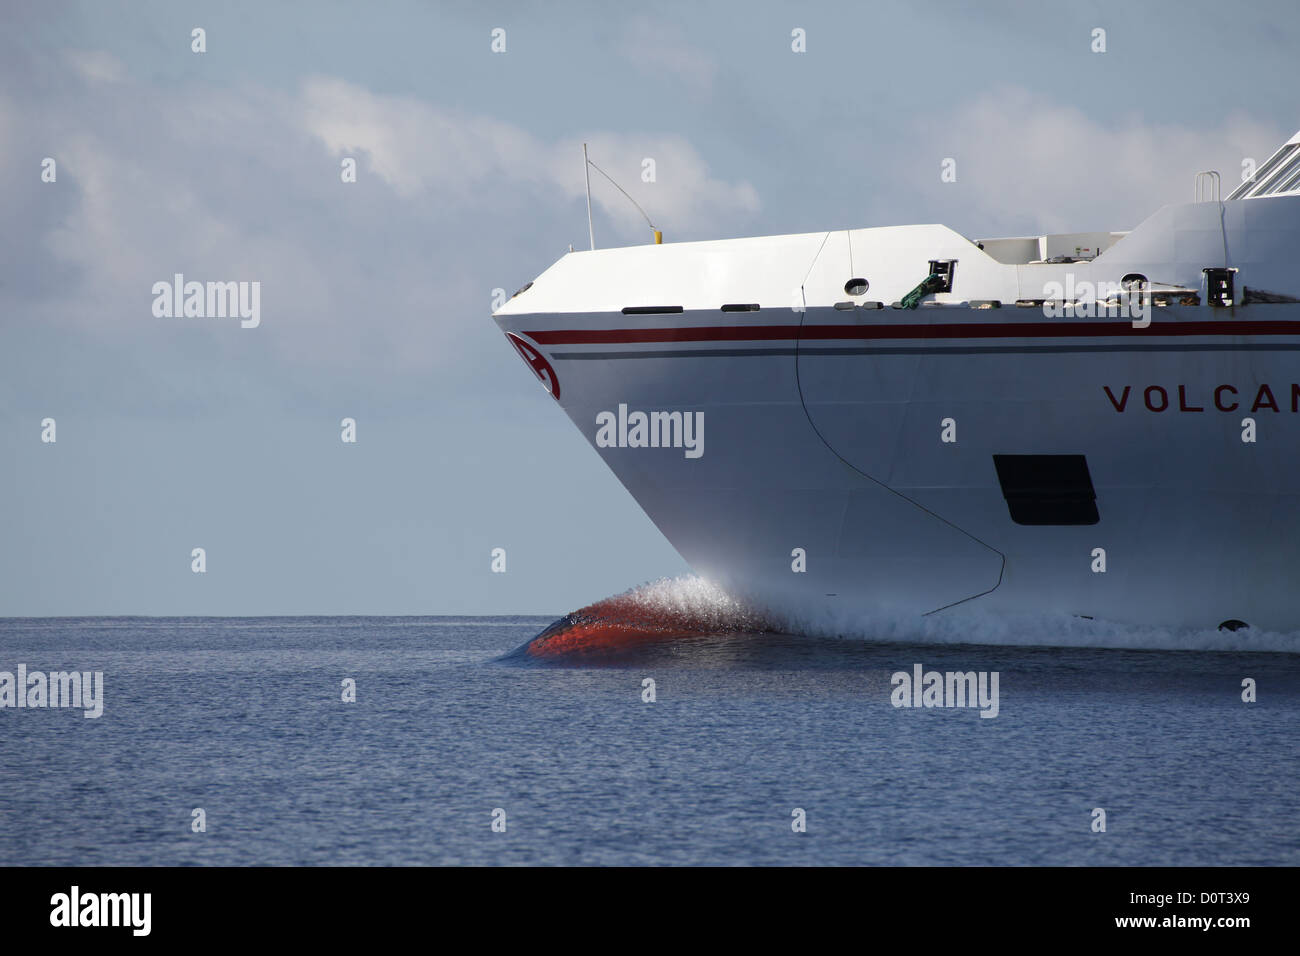 Close-up of the bow keel of the fast speed passenger ferry Volcan de Taburiente, Canary Islands - Stock Image